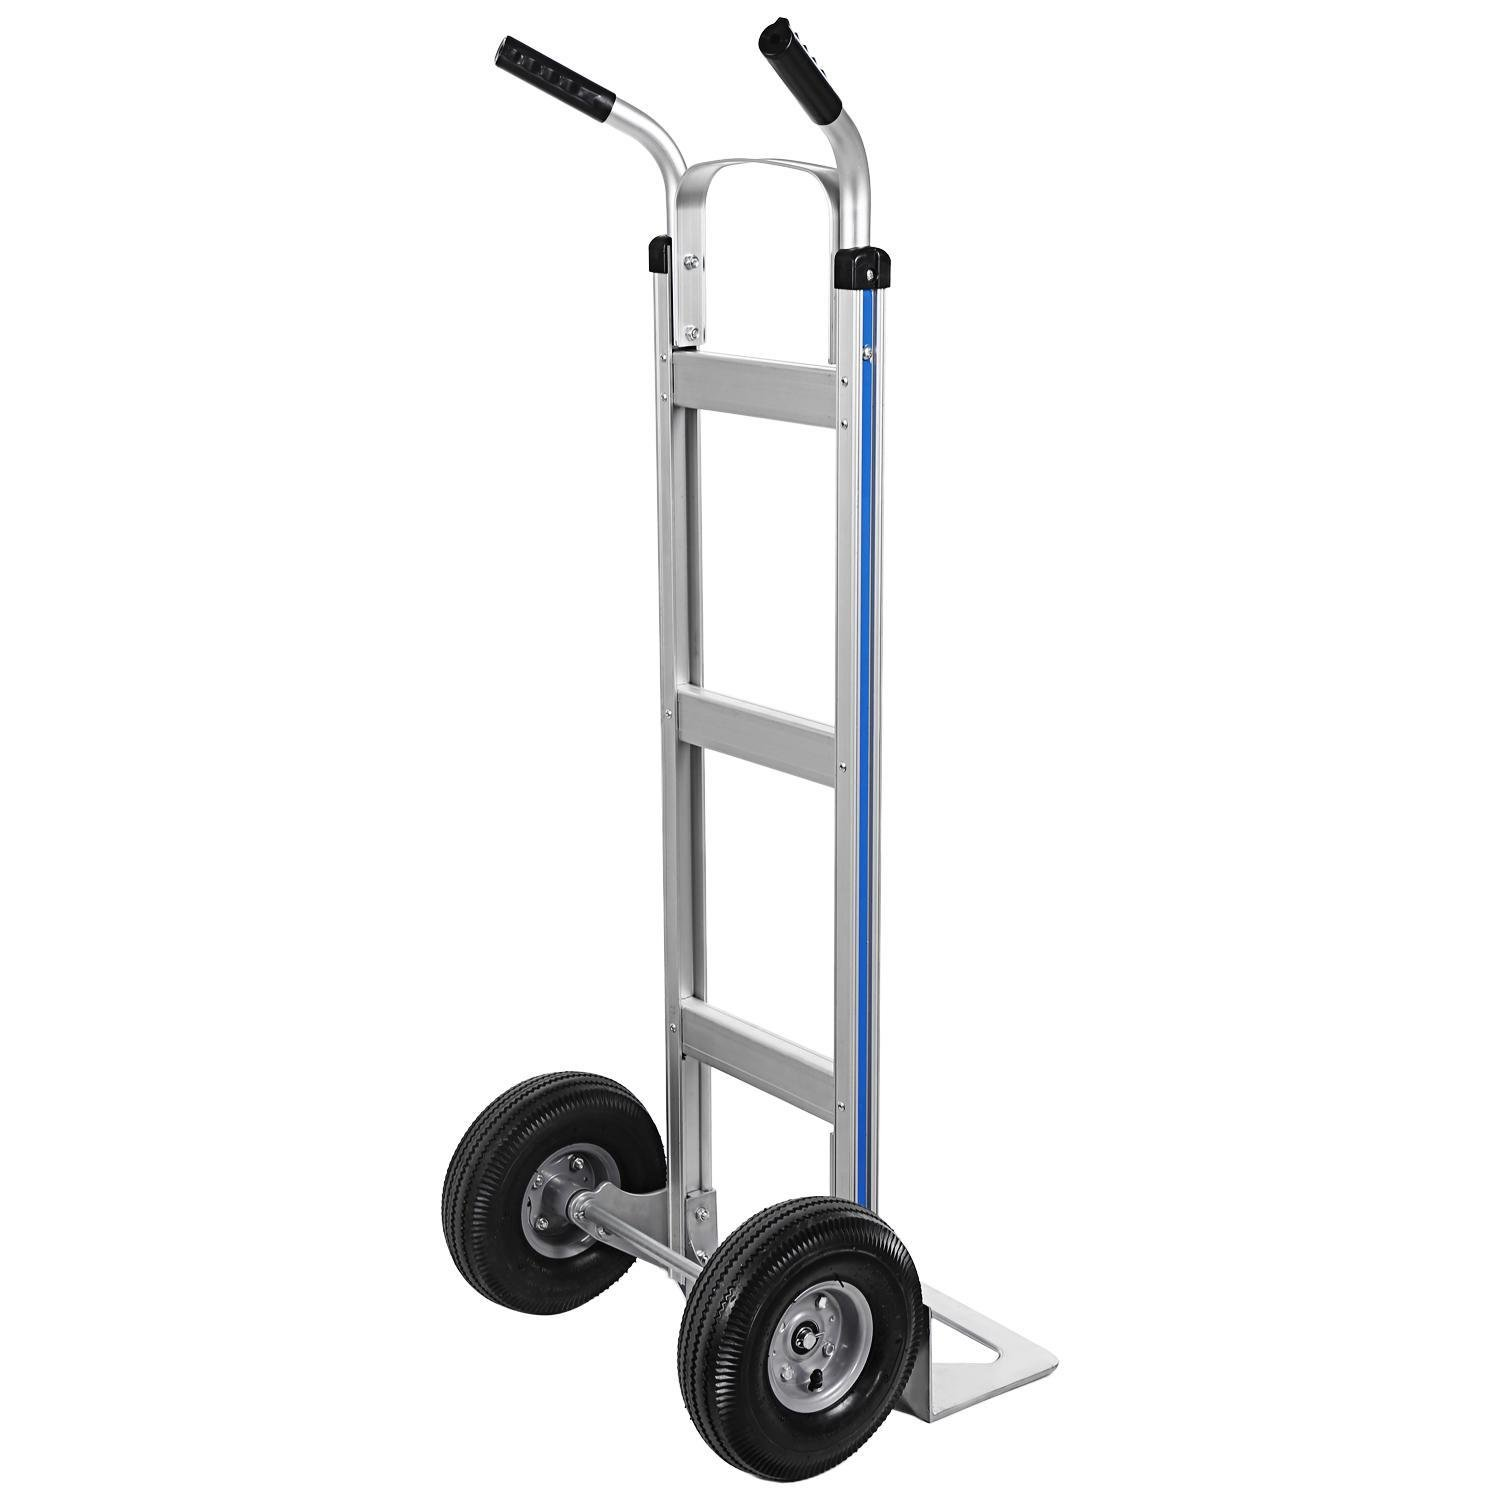 Ferty Aluminum Hand Trucks 500LBS With 2 Pneumatic Tires Dolly, Double Pistol Grip Handle Heavy Duty Trolley/Cart With 2 Wrench by Ferty (Image #4)